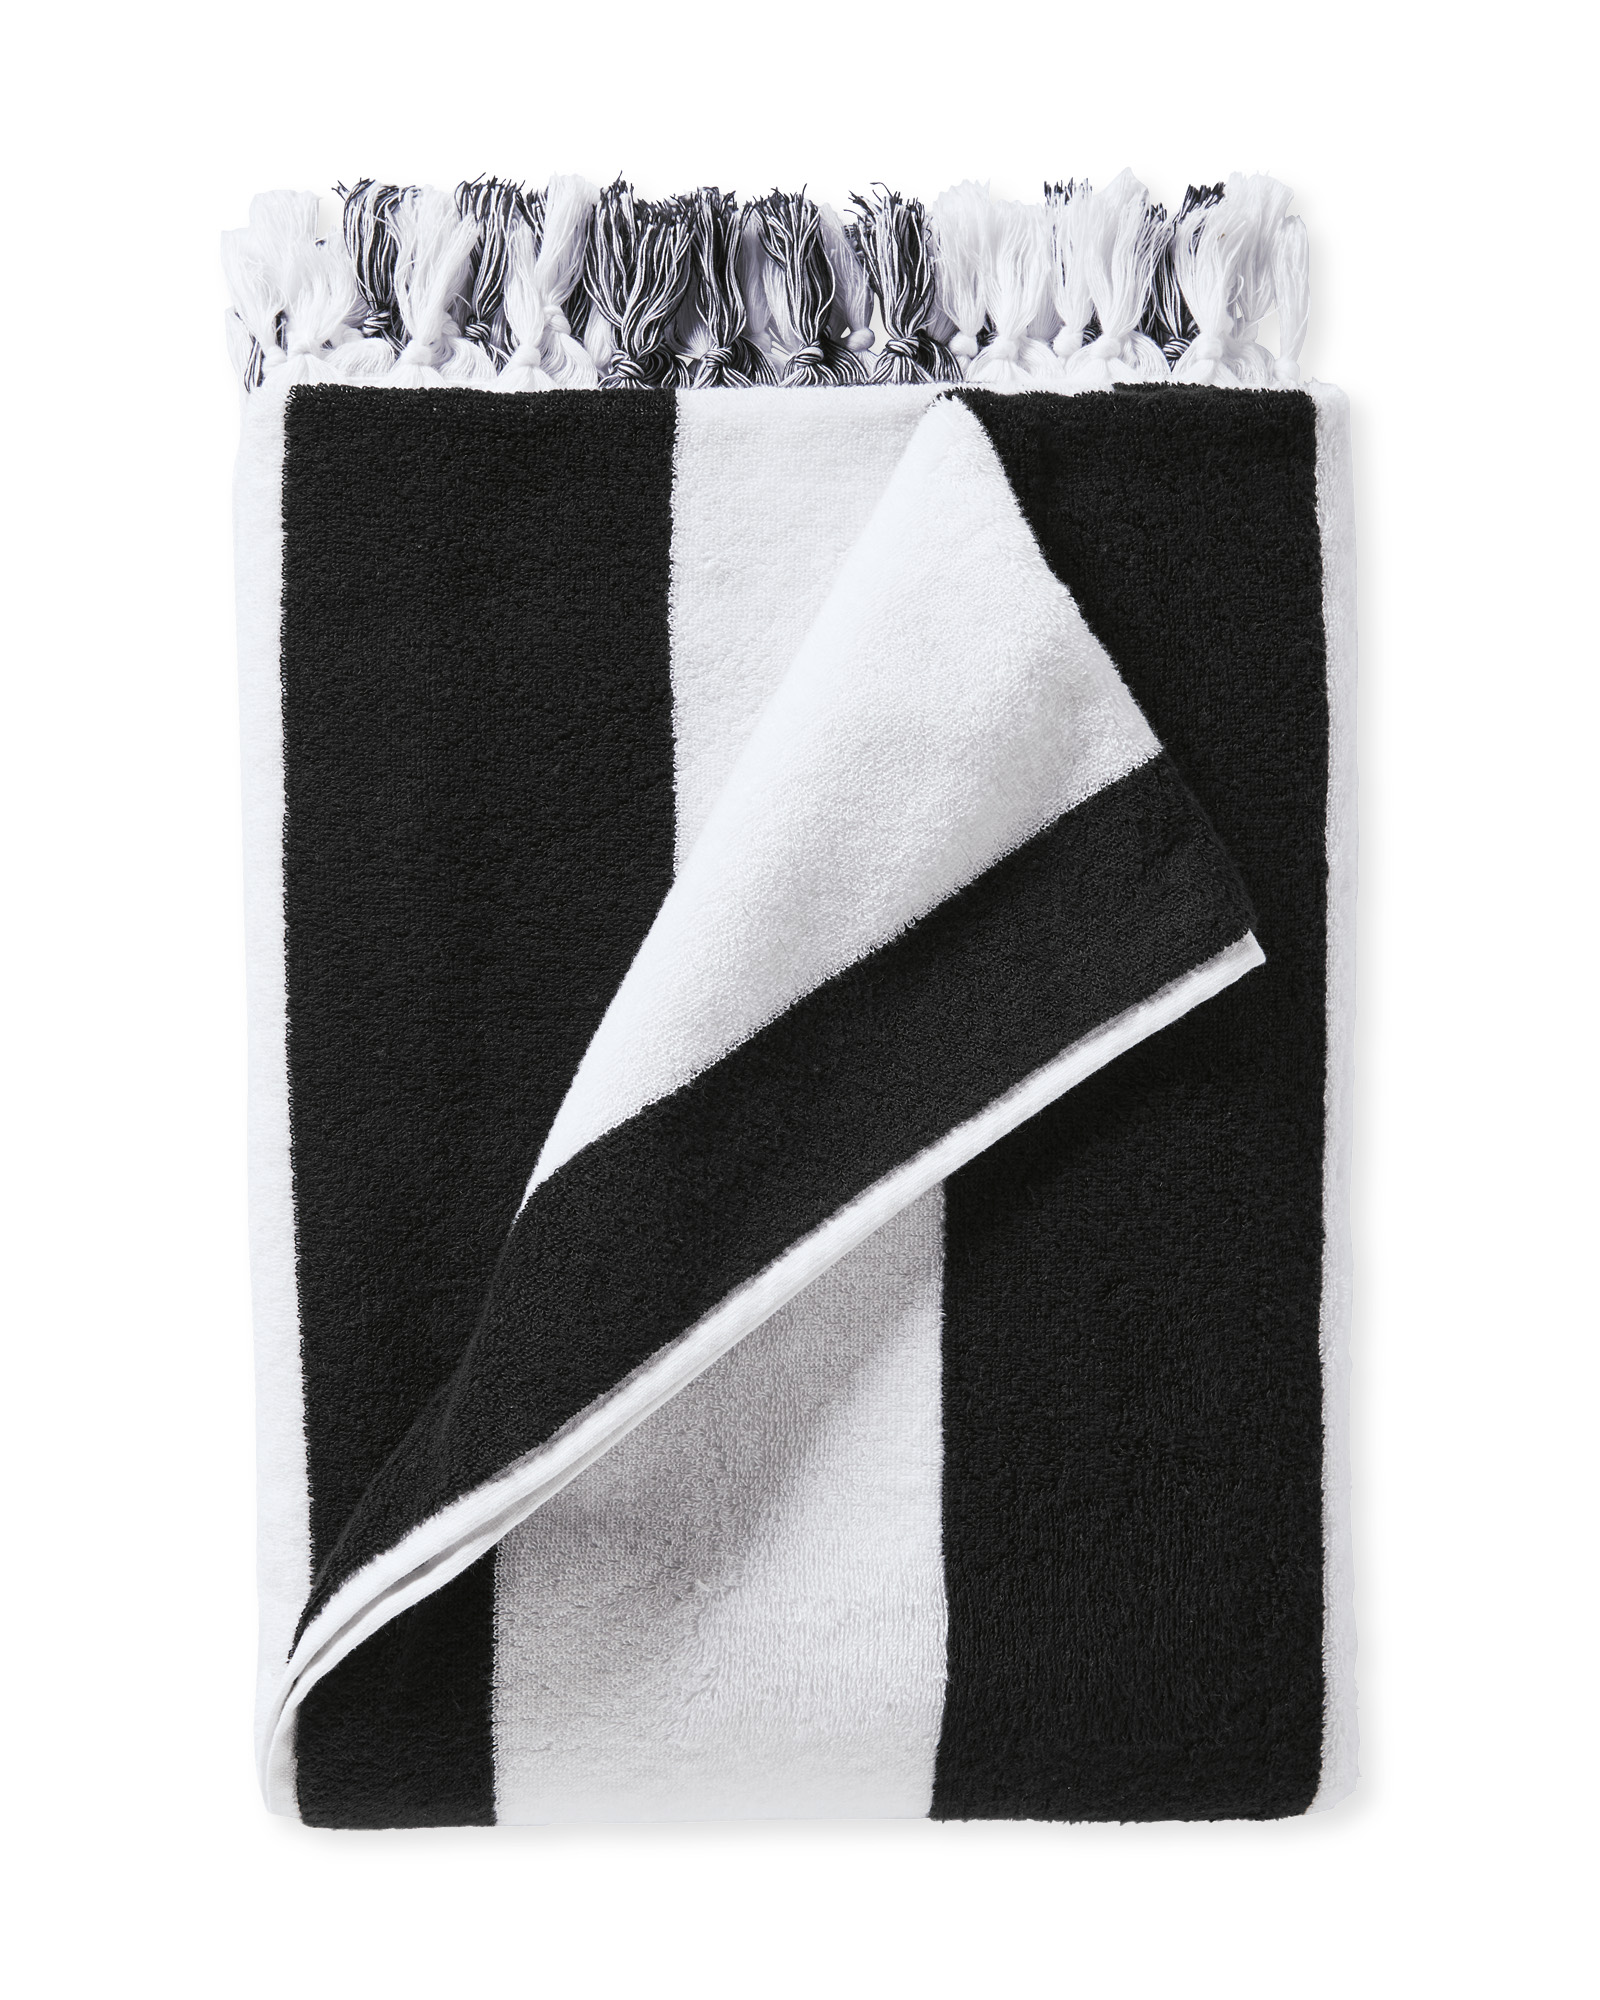 Mallorca Beach Towel, Black